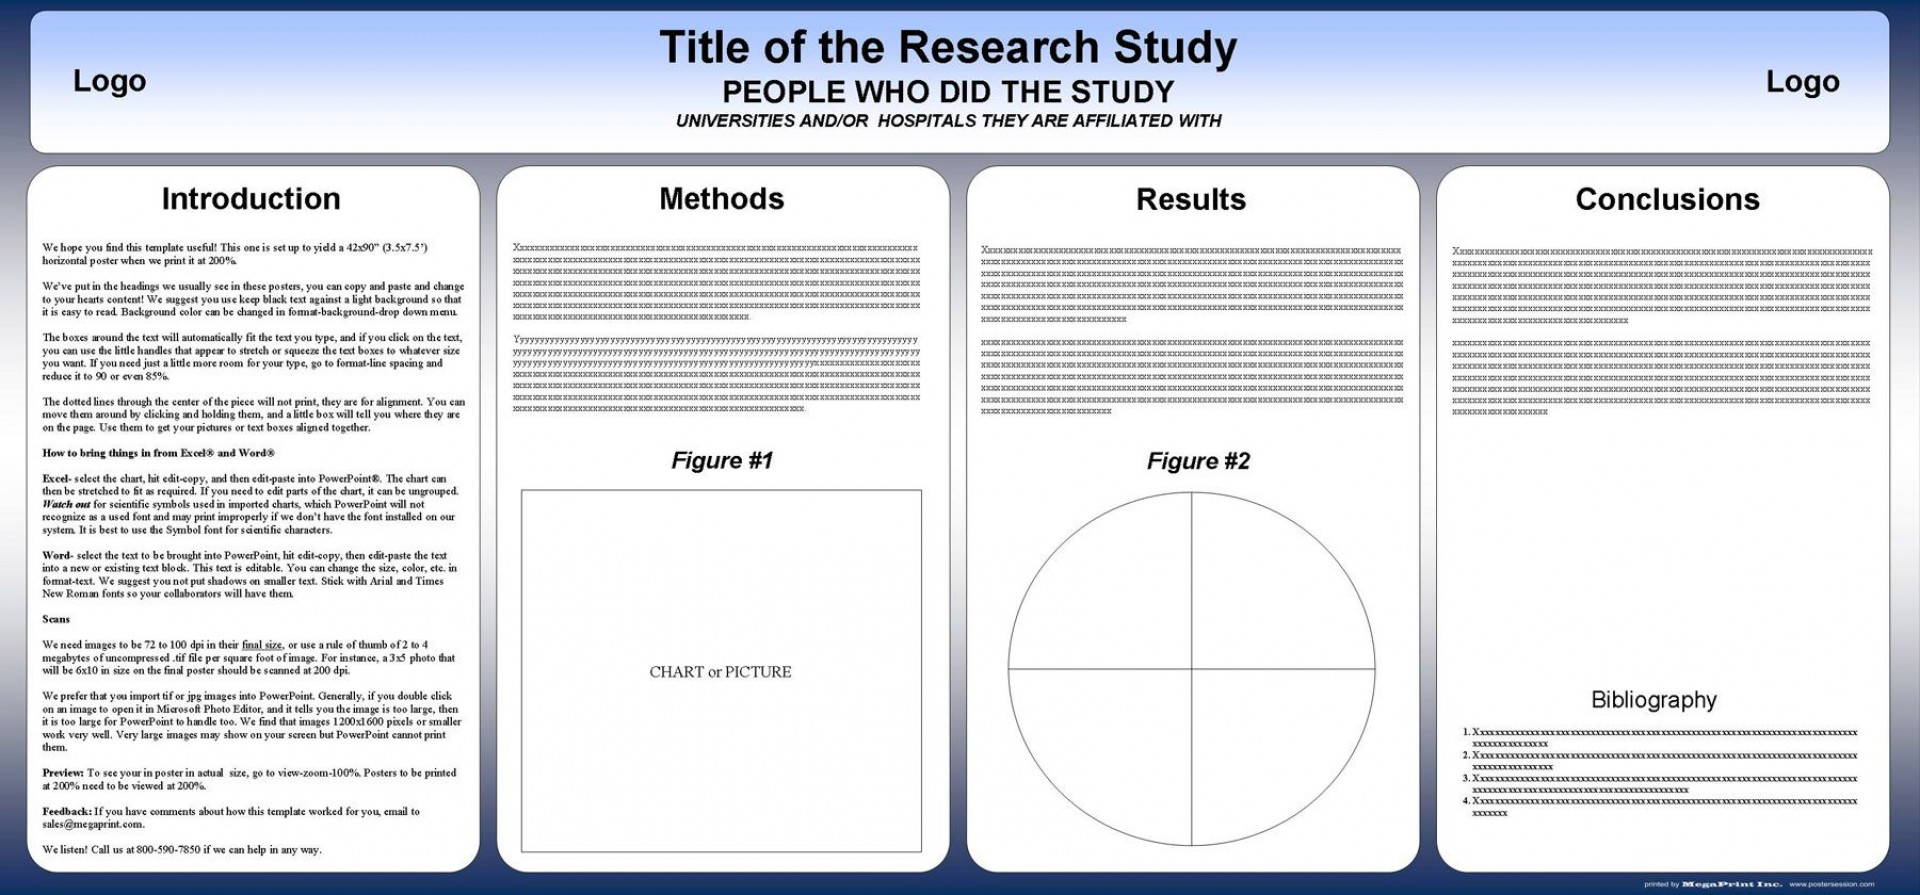 004 Stunning Research Poster Template Powerpoint Example  Scientific Ppt1920